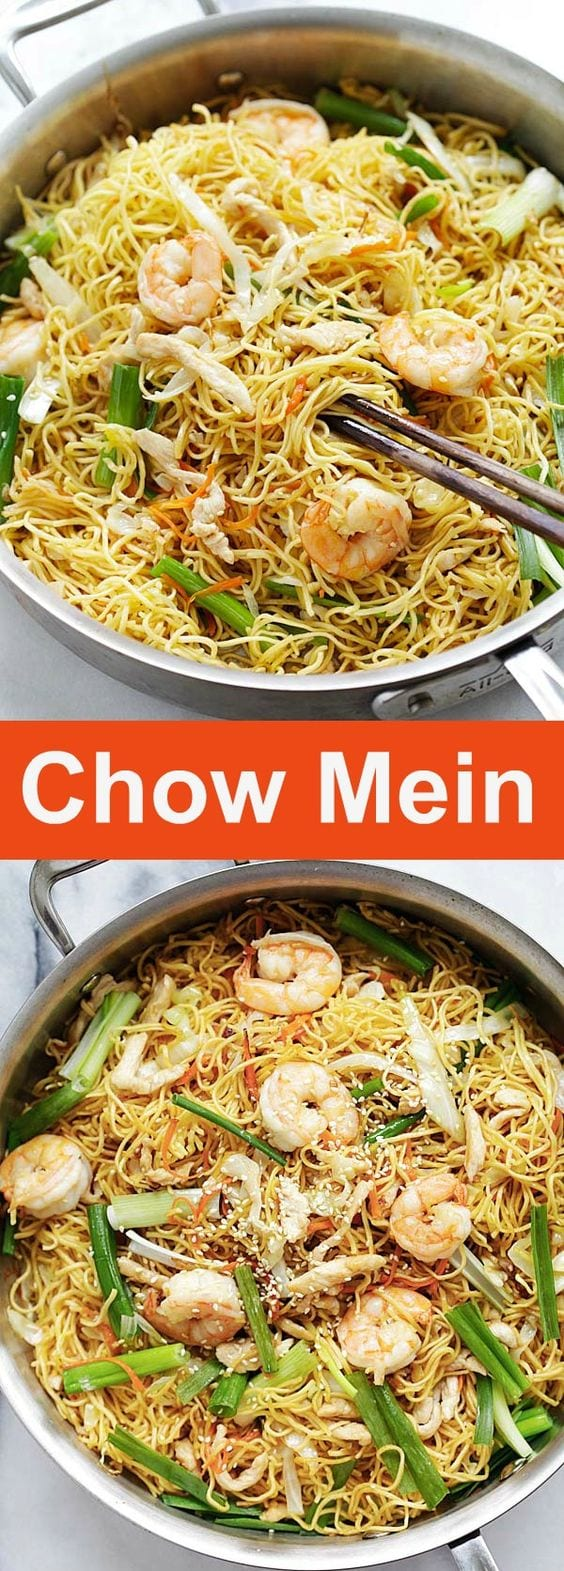 Chow Mein - quick and easy stir fried noodles with chicken, shrimp and vegetables, with the best Chow Mein sauce. Turn your pantry ingredients into an authentic Chinese recipe that is better than Panda Express or takeout | rasamalaysia.com